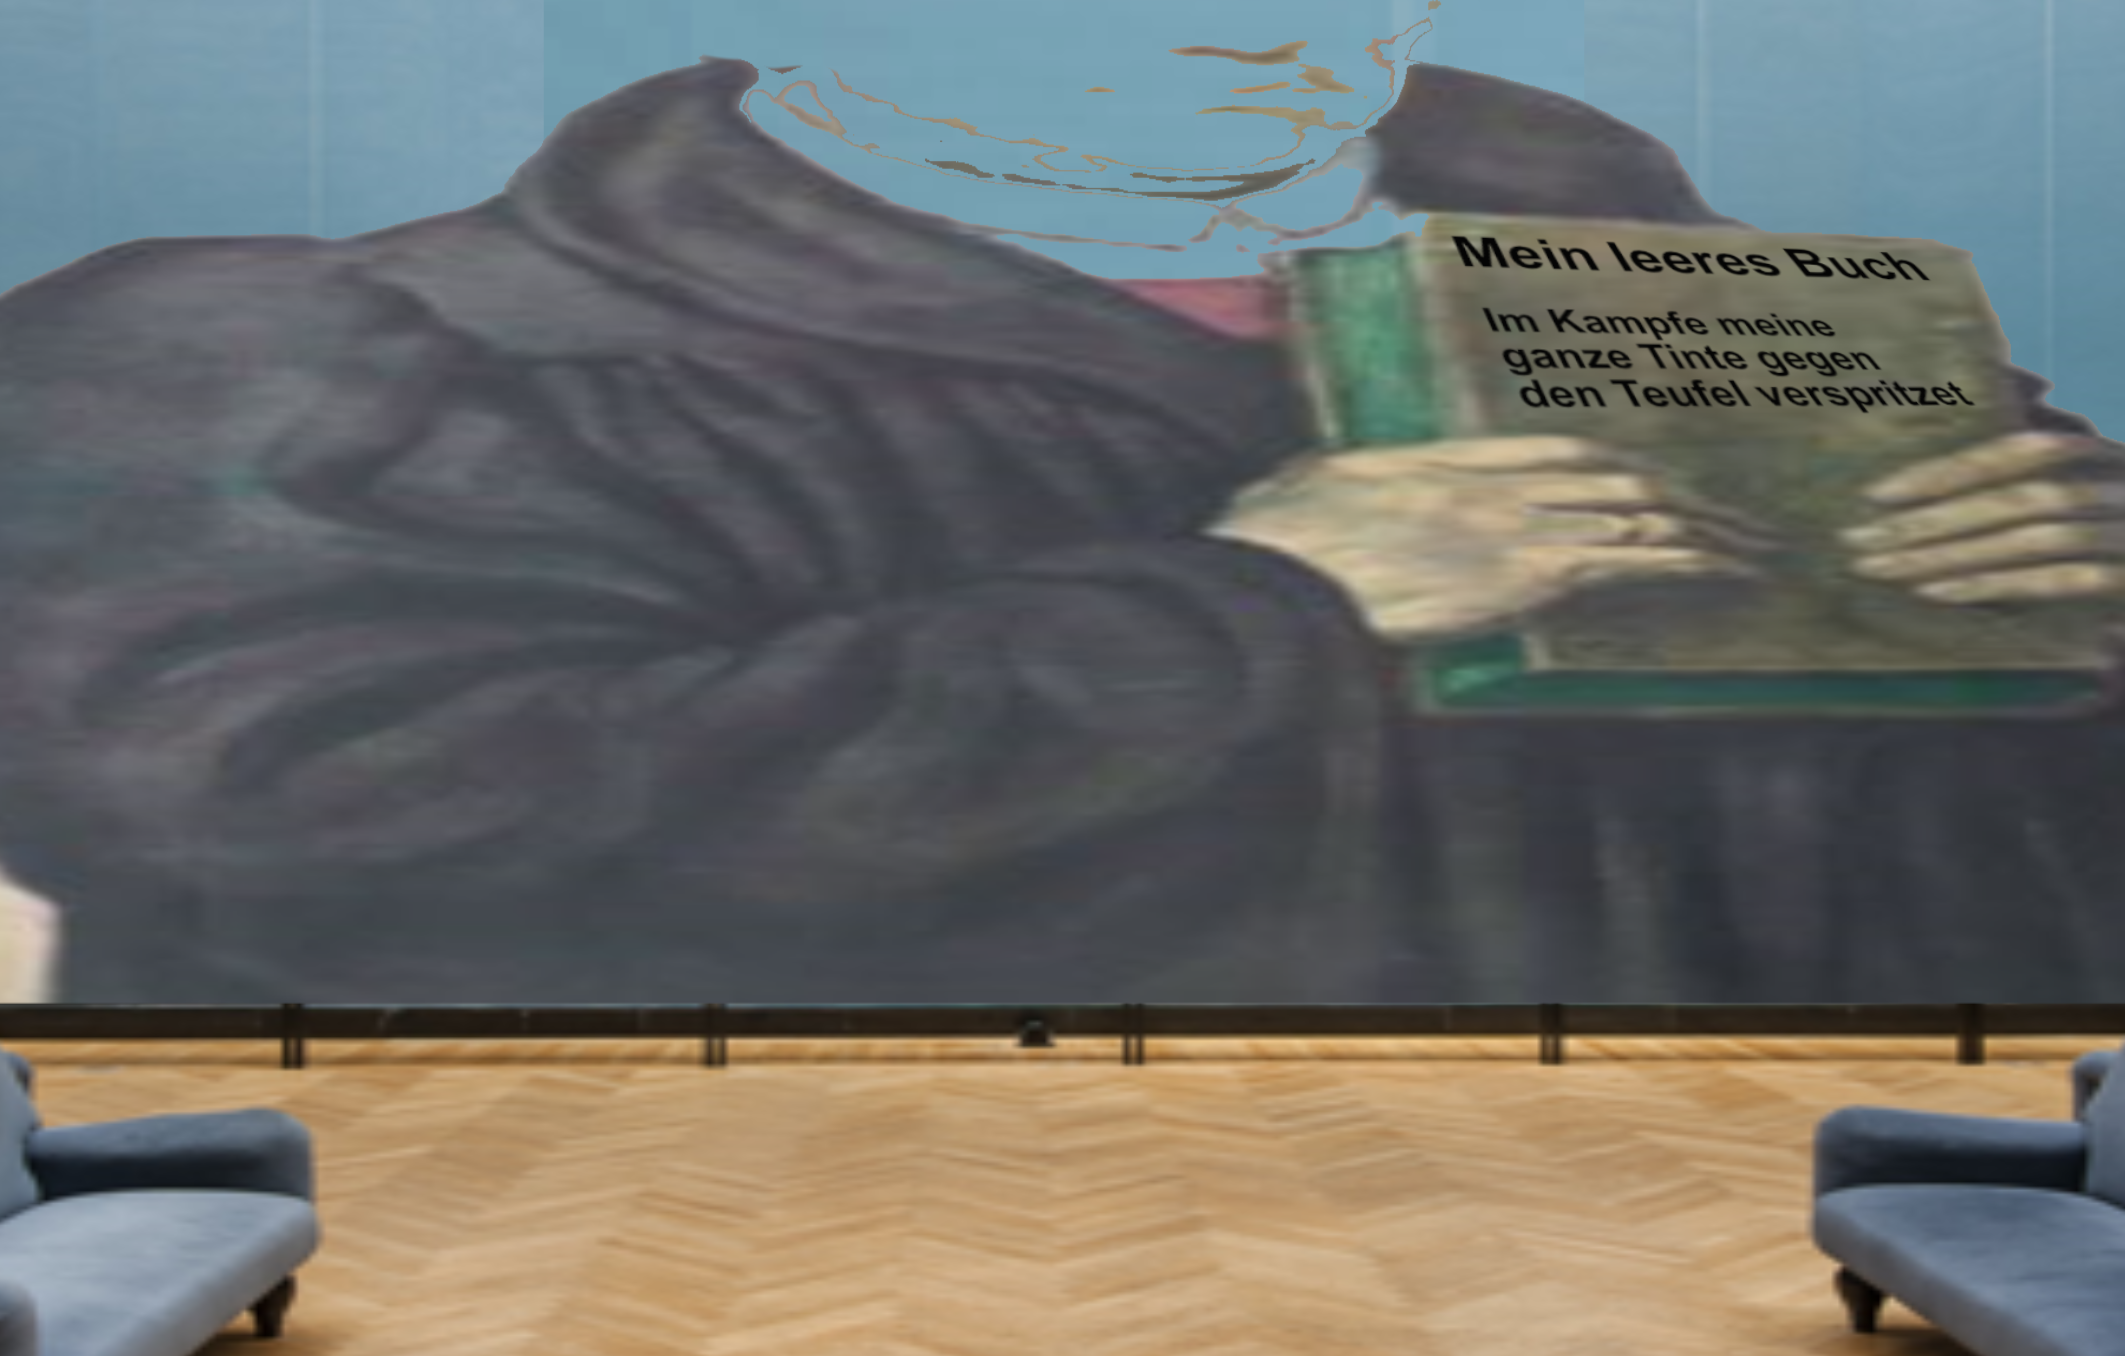 Martin Luther - Mein leeres Buch.png